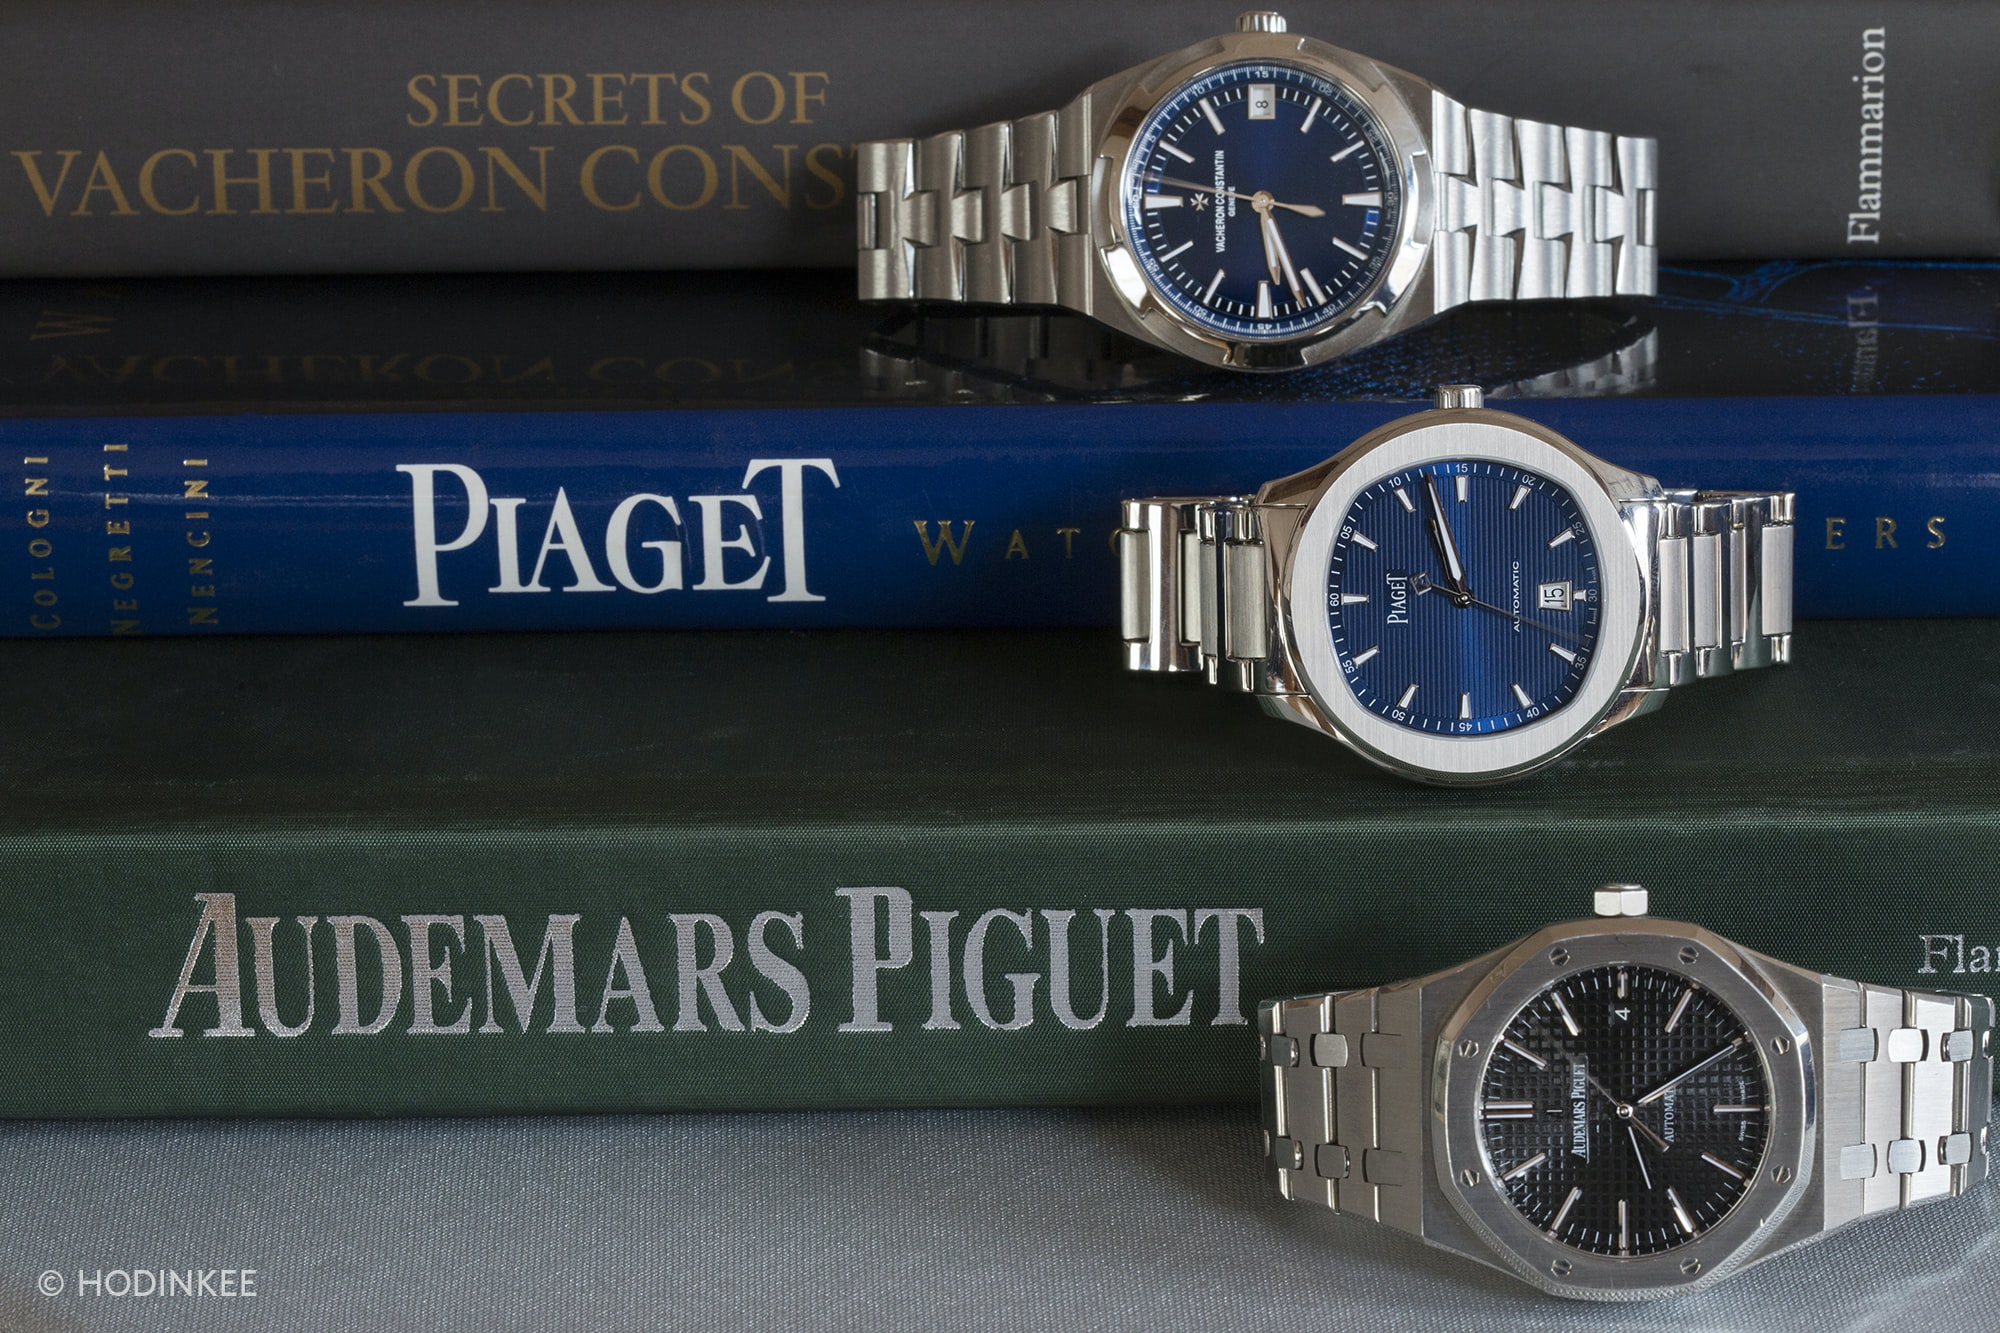 Three On Three: Comparing The Vacheron Constantin Overseas, The Piaget Polo S, And The Audemars Piguet Royal Oak 15400 Three On Three: Comparing The Vacheron Constantin Overseas, The Piaget Polo S, And The Audemars Piguet Royal Oak 15400 20016096 copy